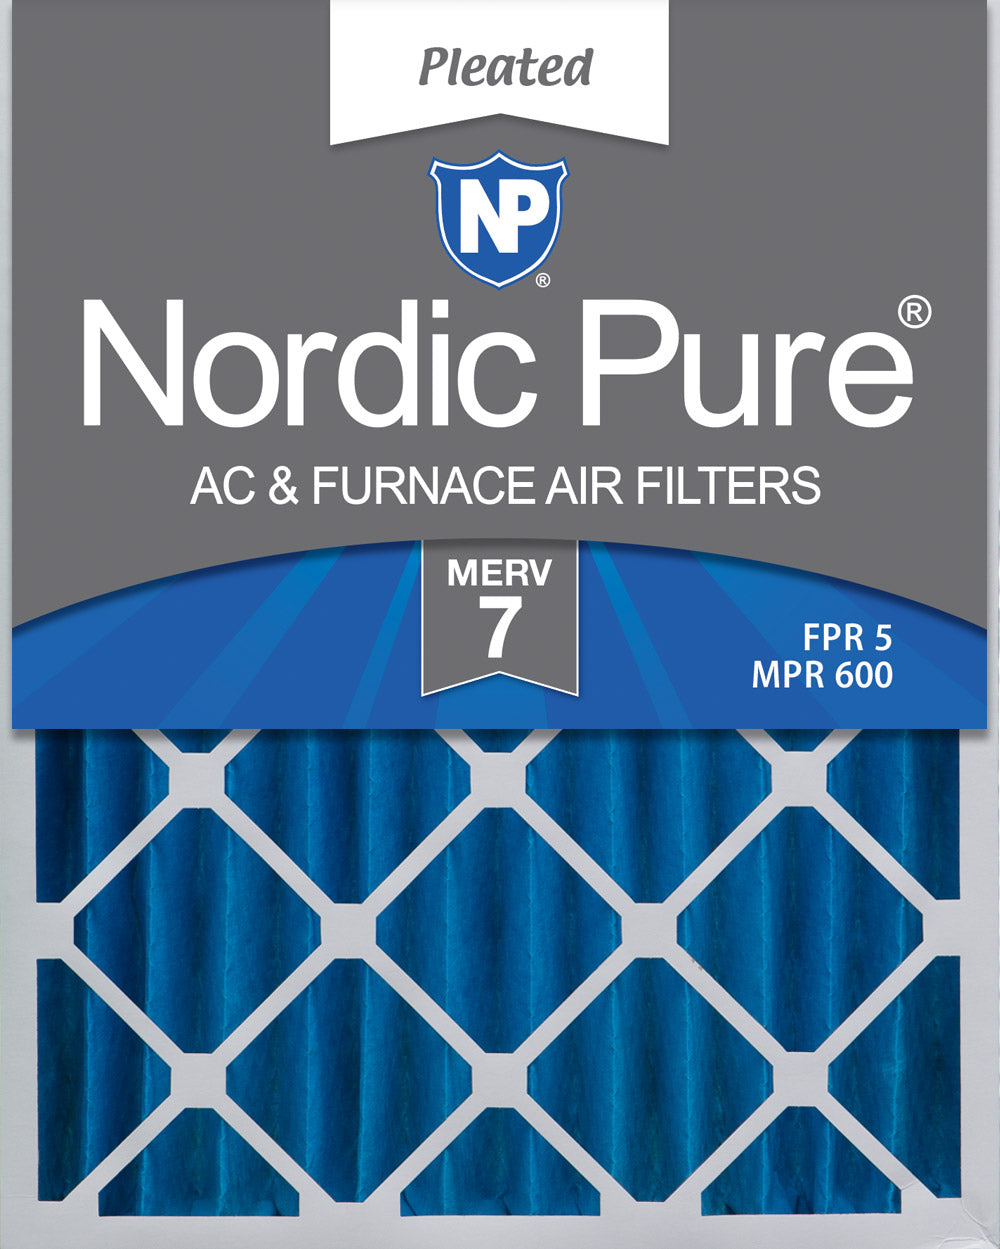 16x20x4 (3 5/8) Pleated MERV 7 Air Filters 1 Pack